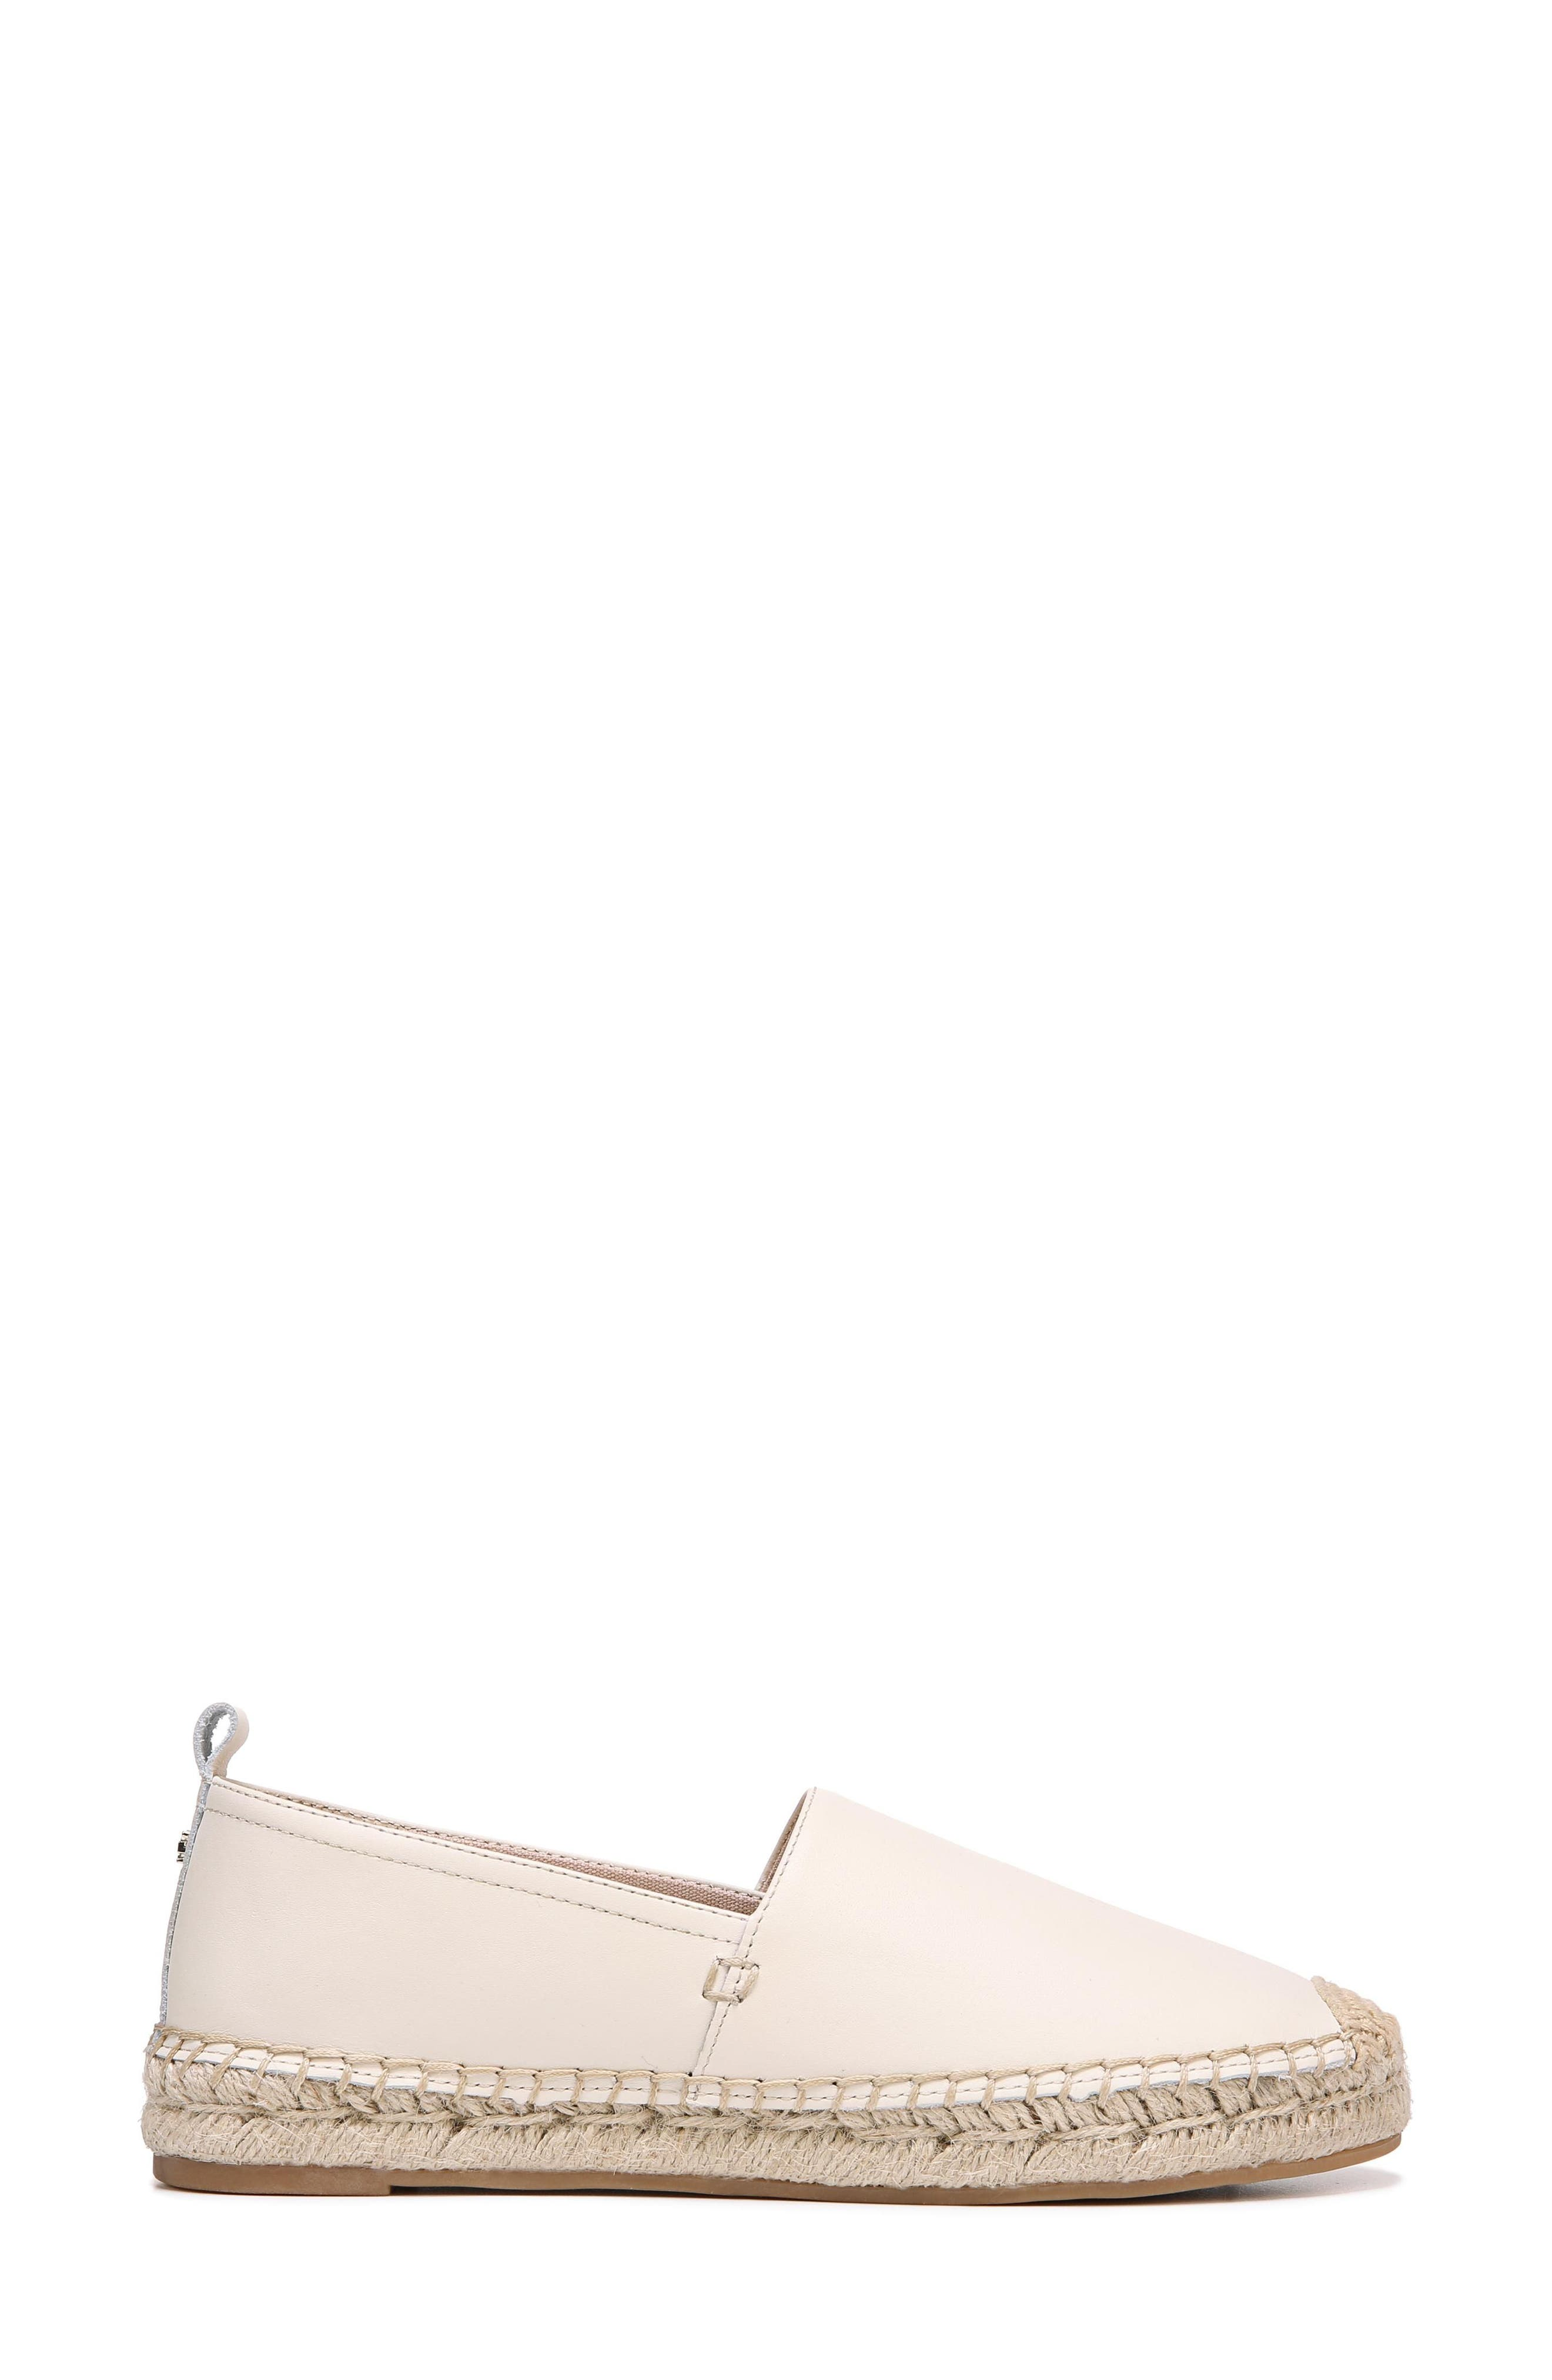 Khloe Espadrille Flat,                             Alternate thumbnail 3, color,                             Modern Ivory Leather